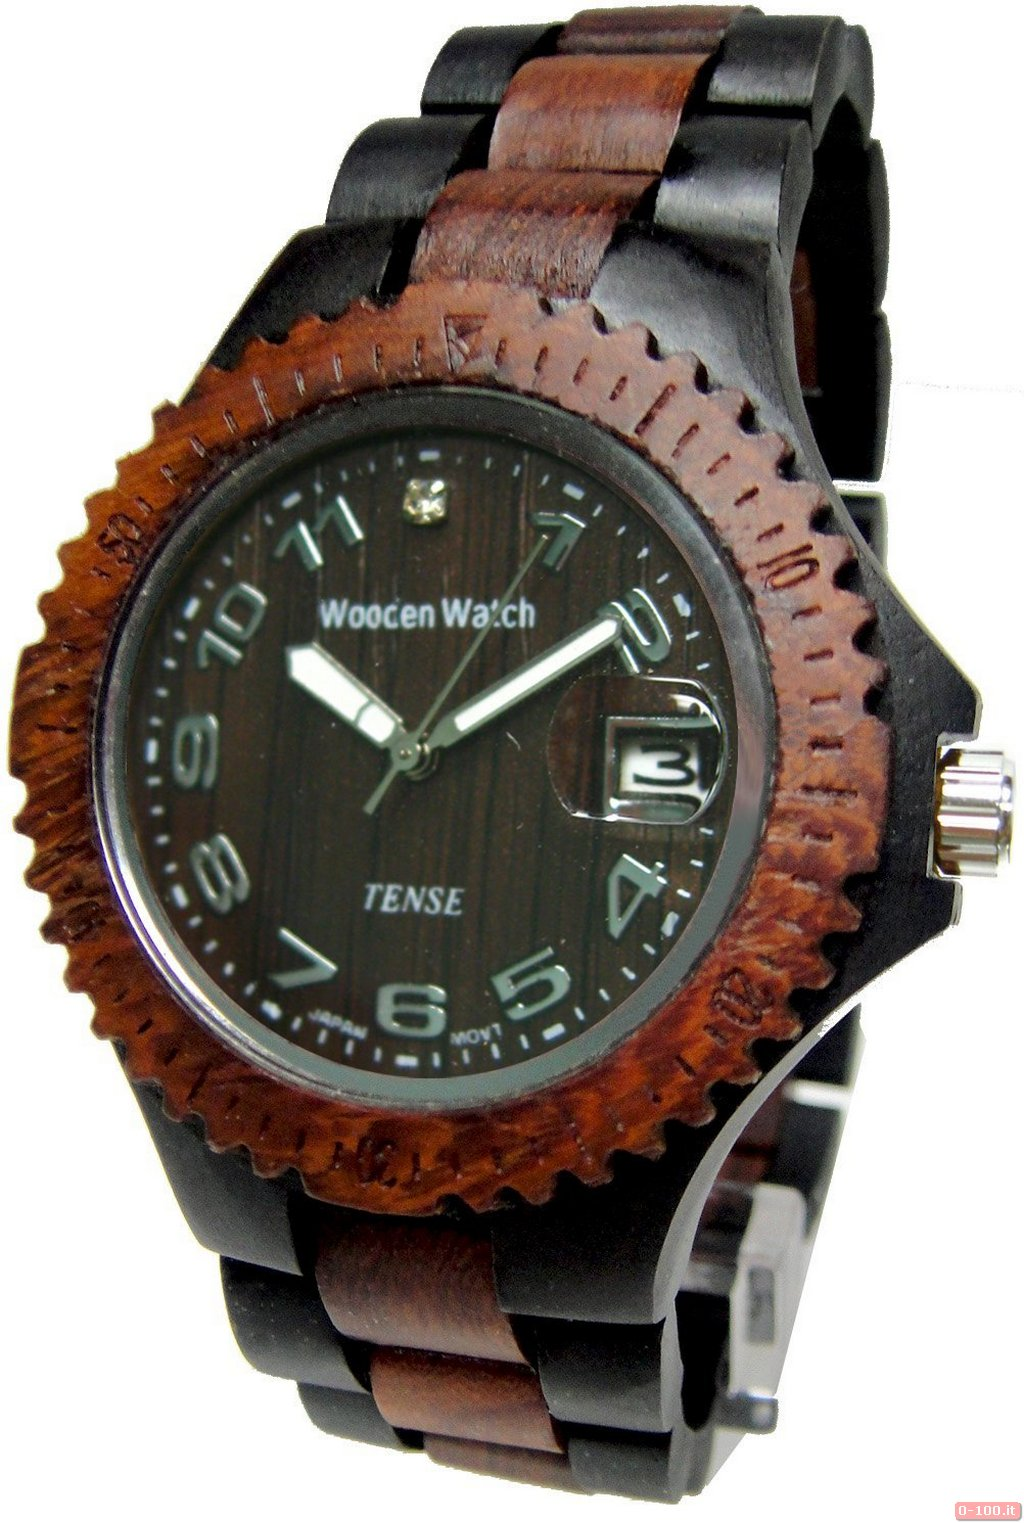 Tense Wood Watch_0-1005